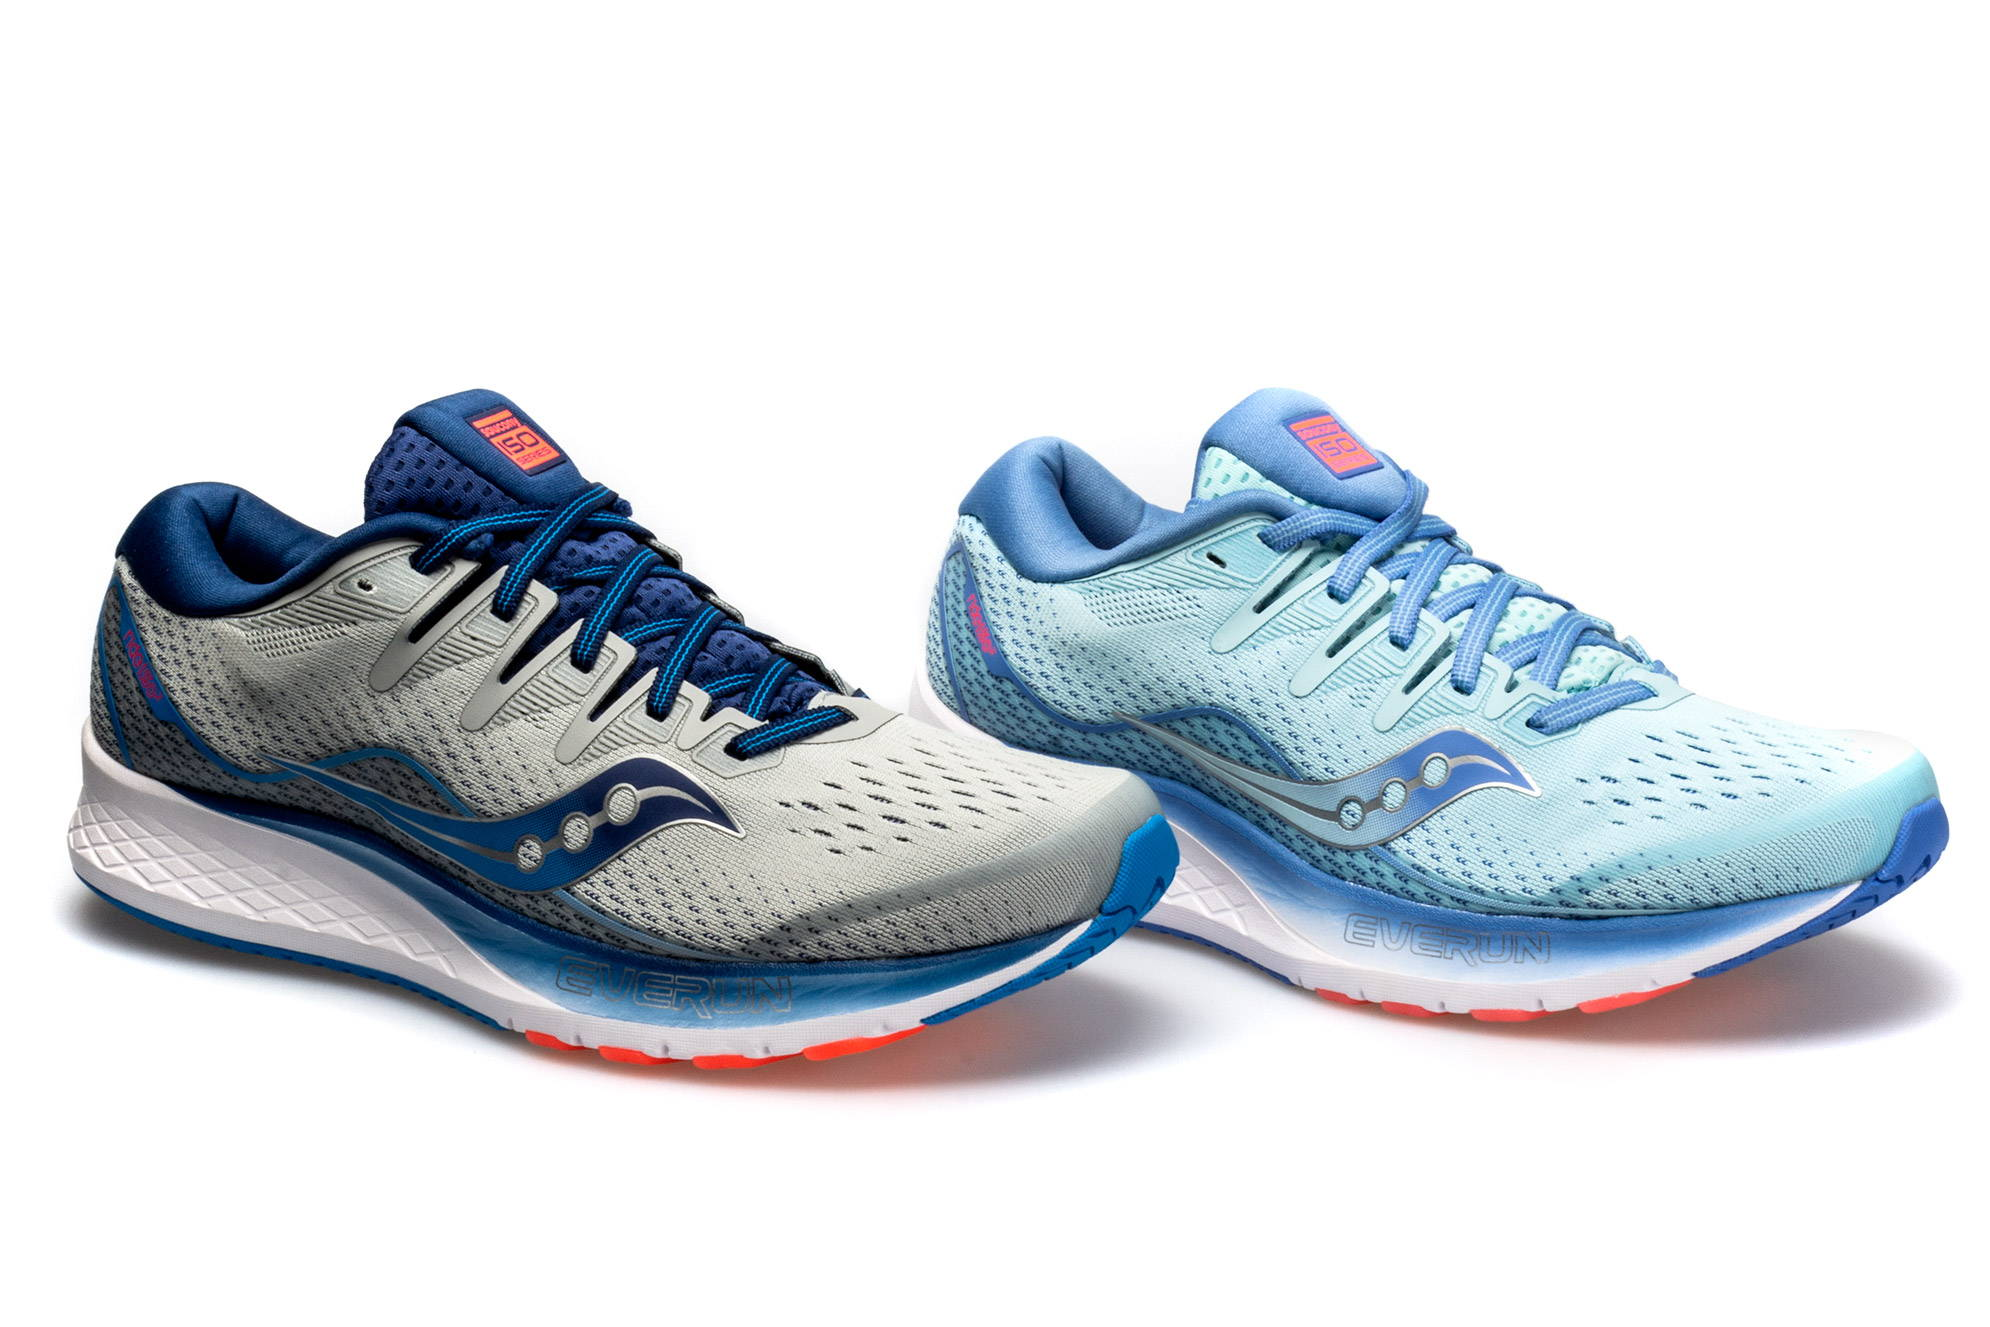 d819d23efa Saucony Ride ISO 2 Running Shoes Preview – Holabird Sports